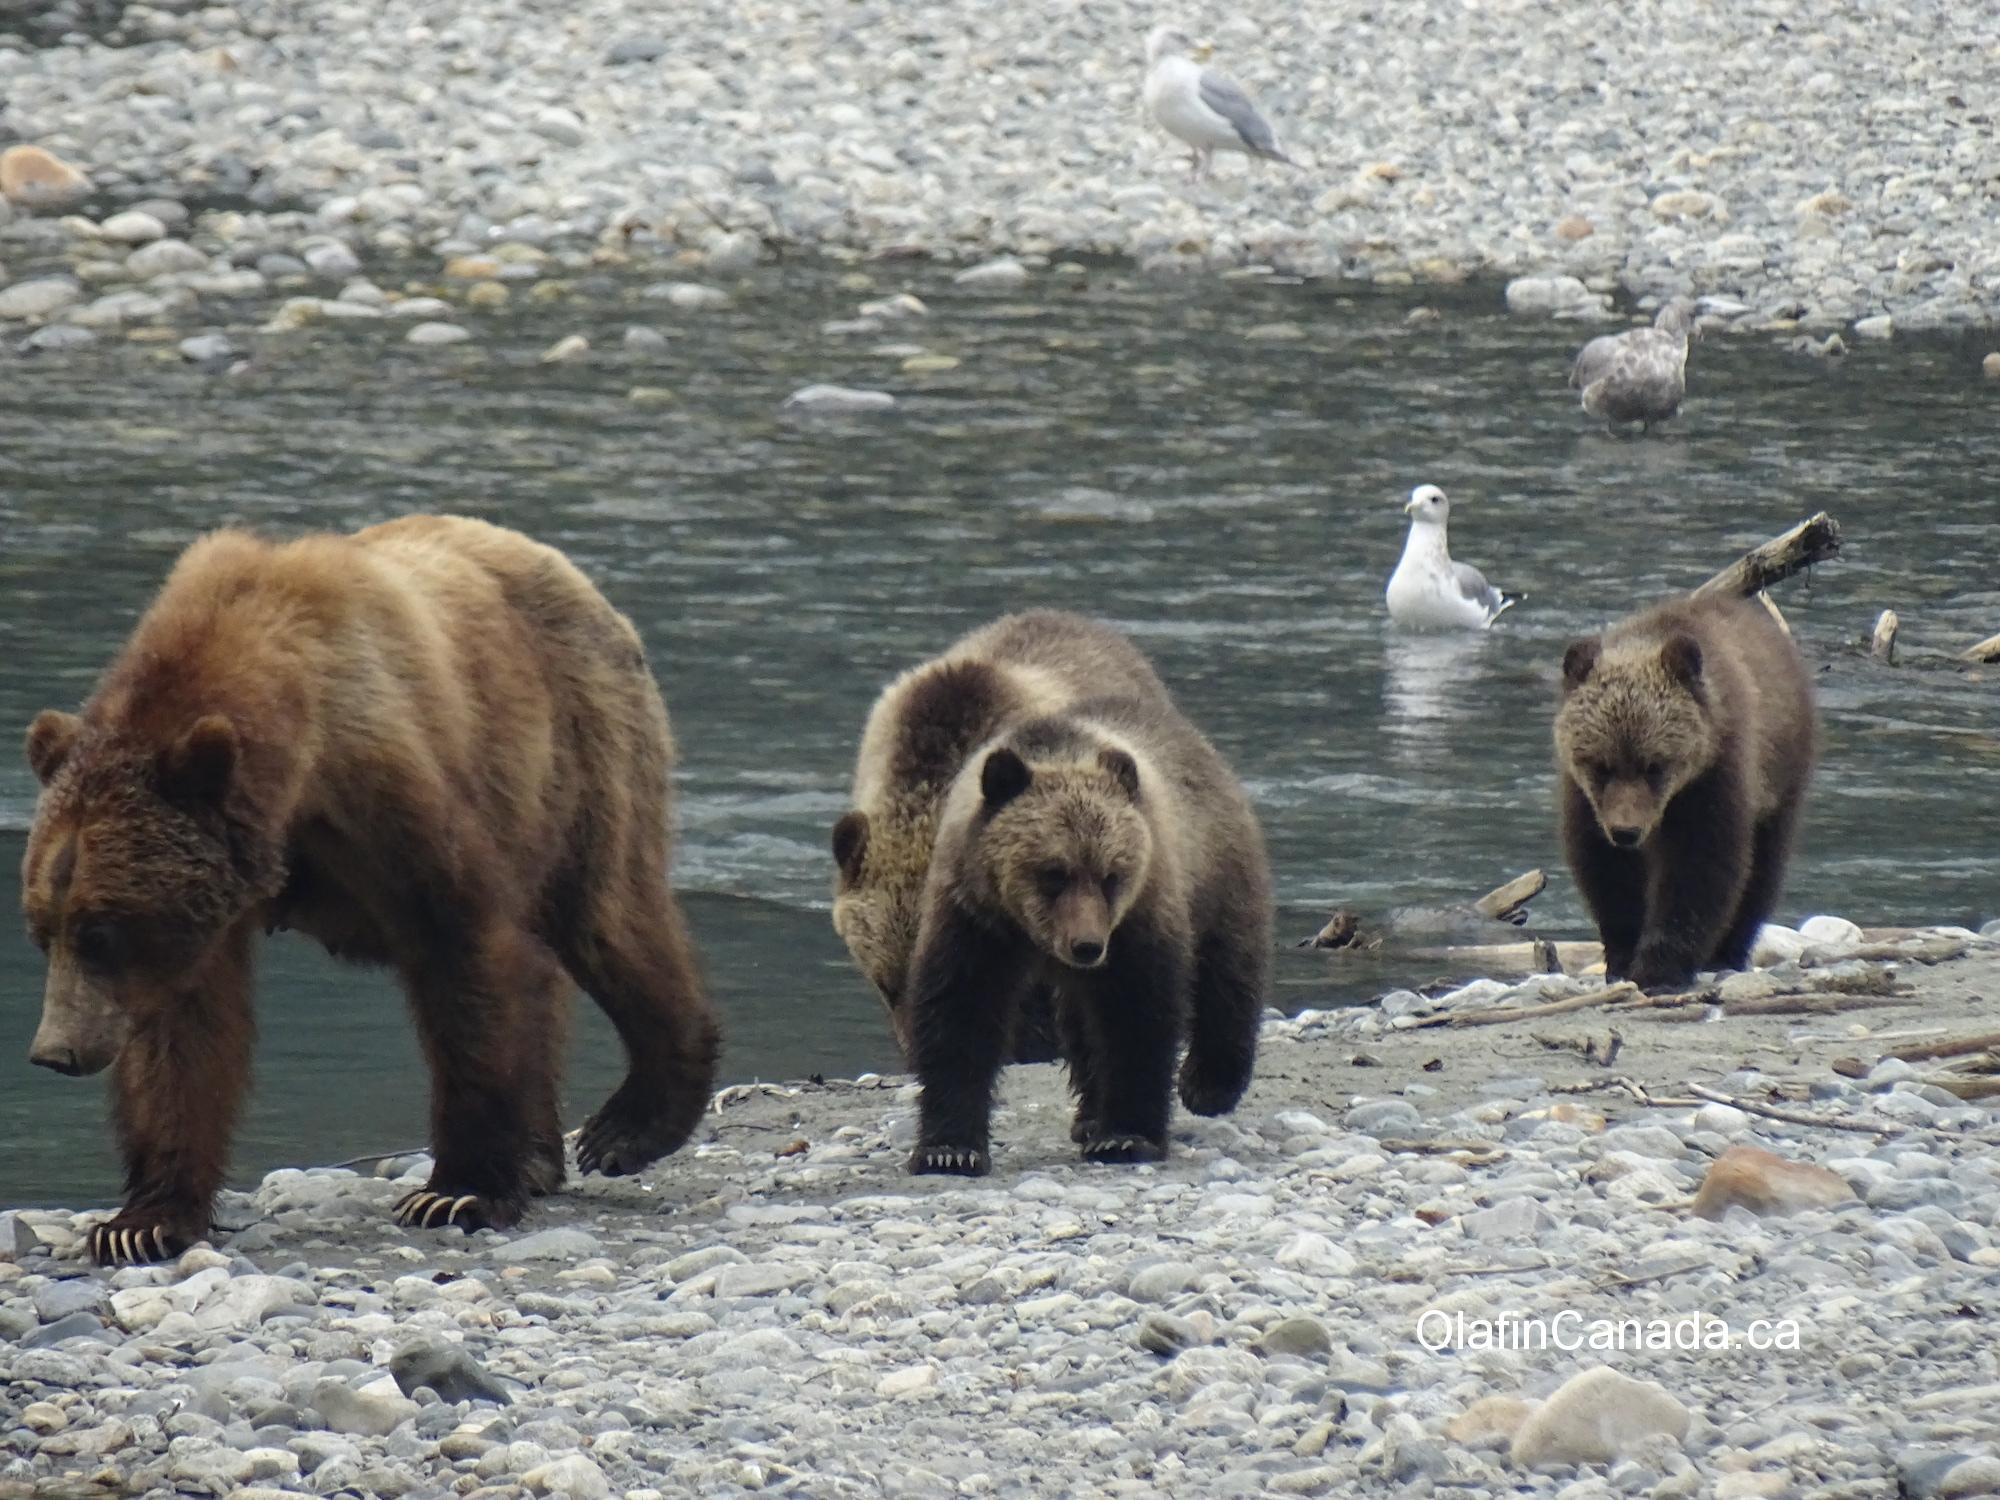 Grizzly family in Bute Inlet #olafincanada #britishcolumbia #discoverbc #wildlife #buteinlet #grizzlybear